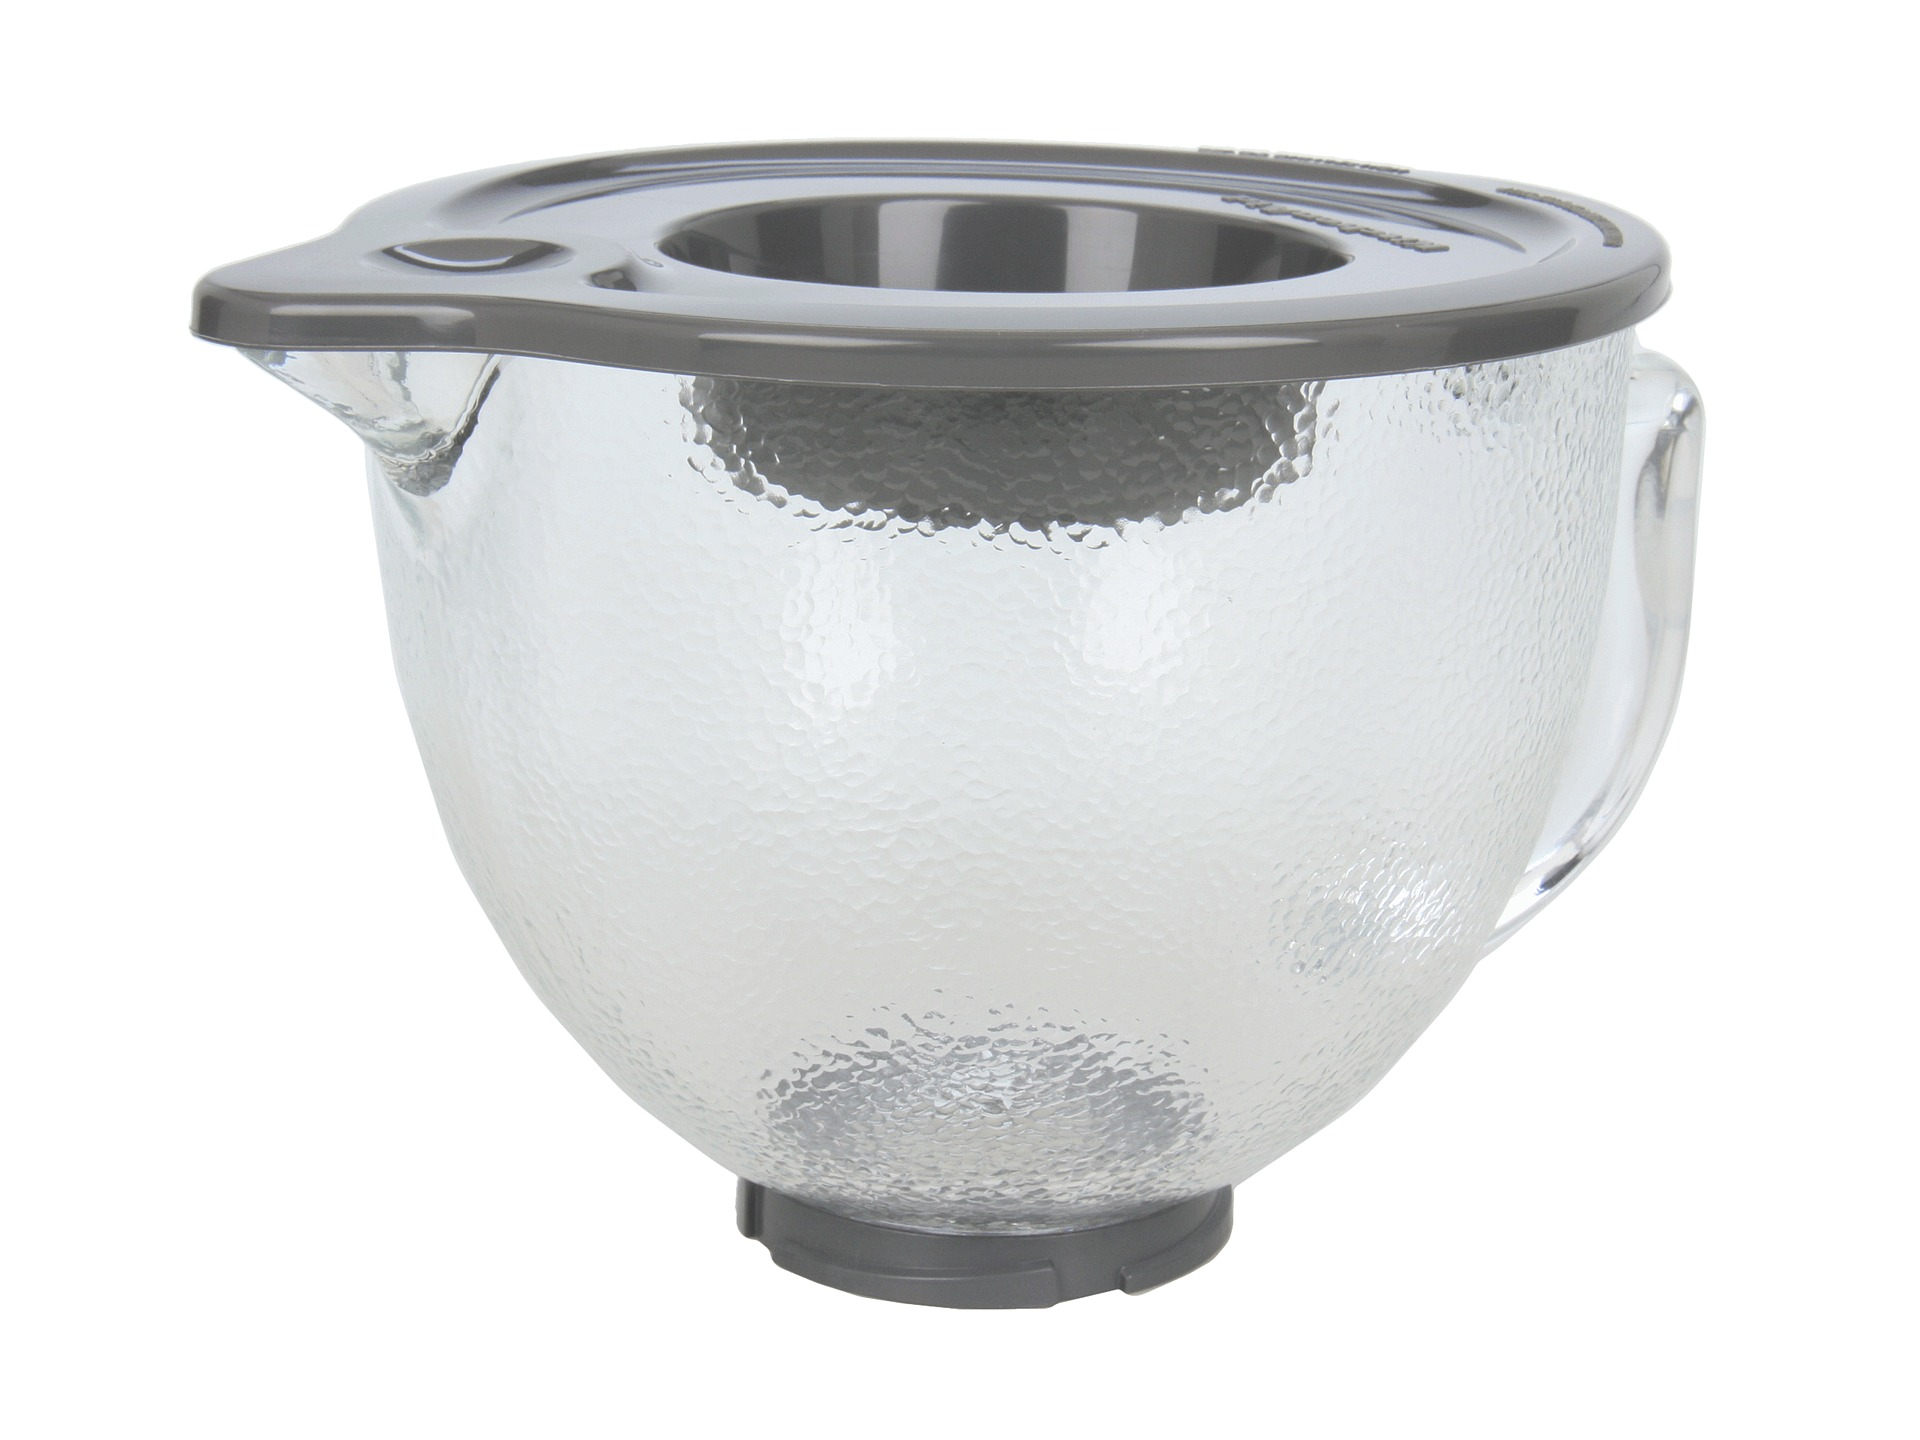 Kitchenaid 5 Qt Hammered Glass Bowl With Pouring Spout Lid Shipped Free At Zappos